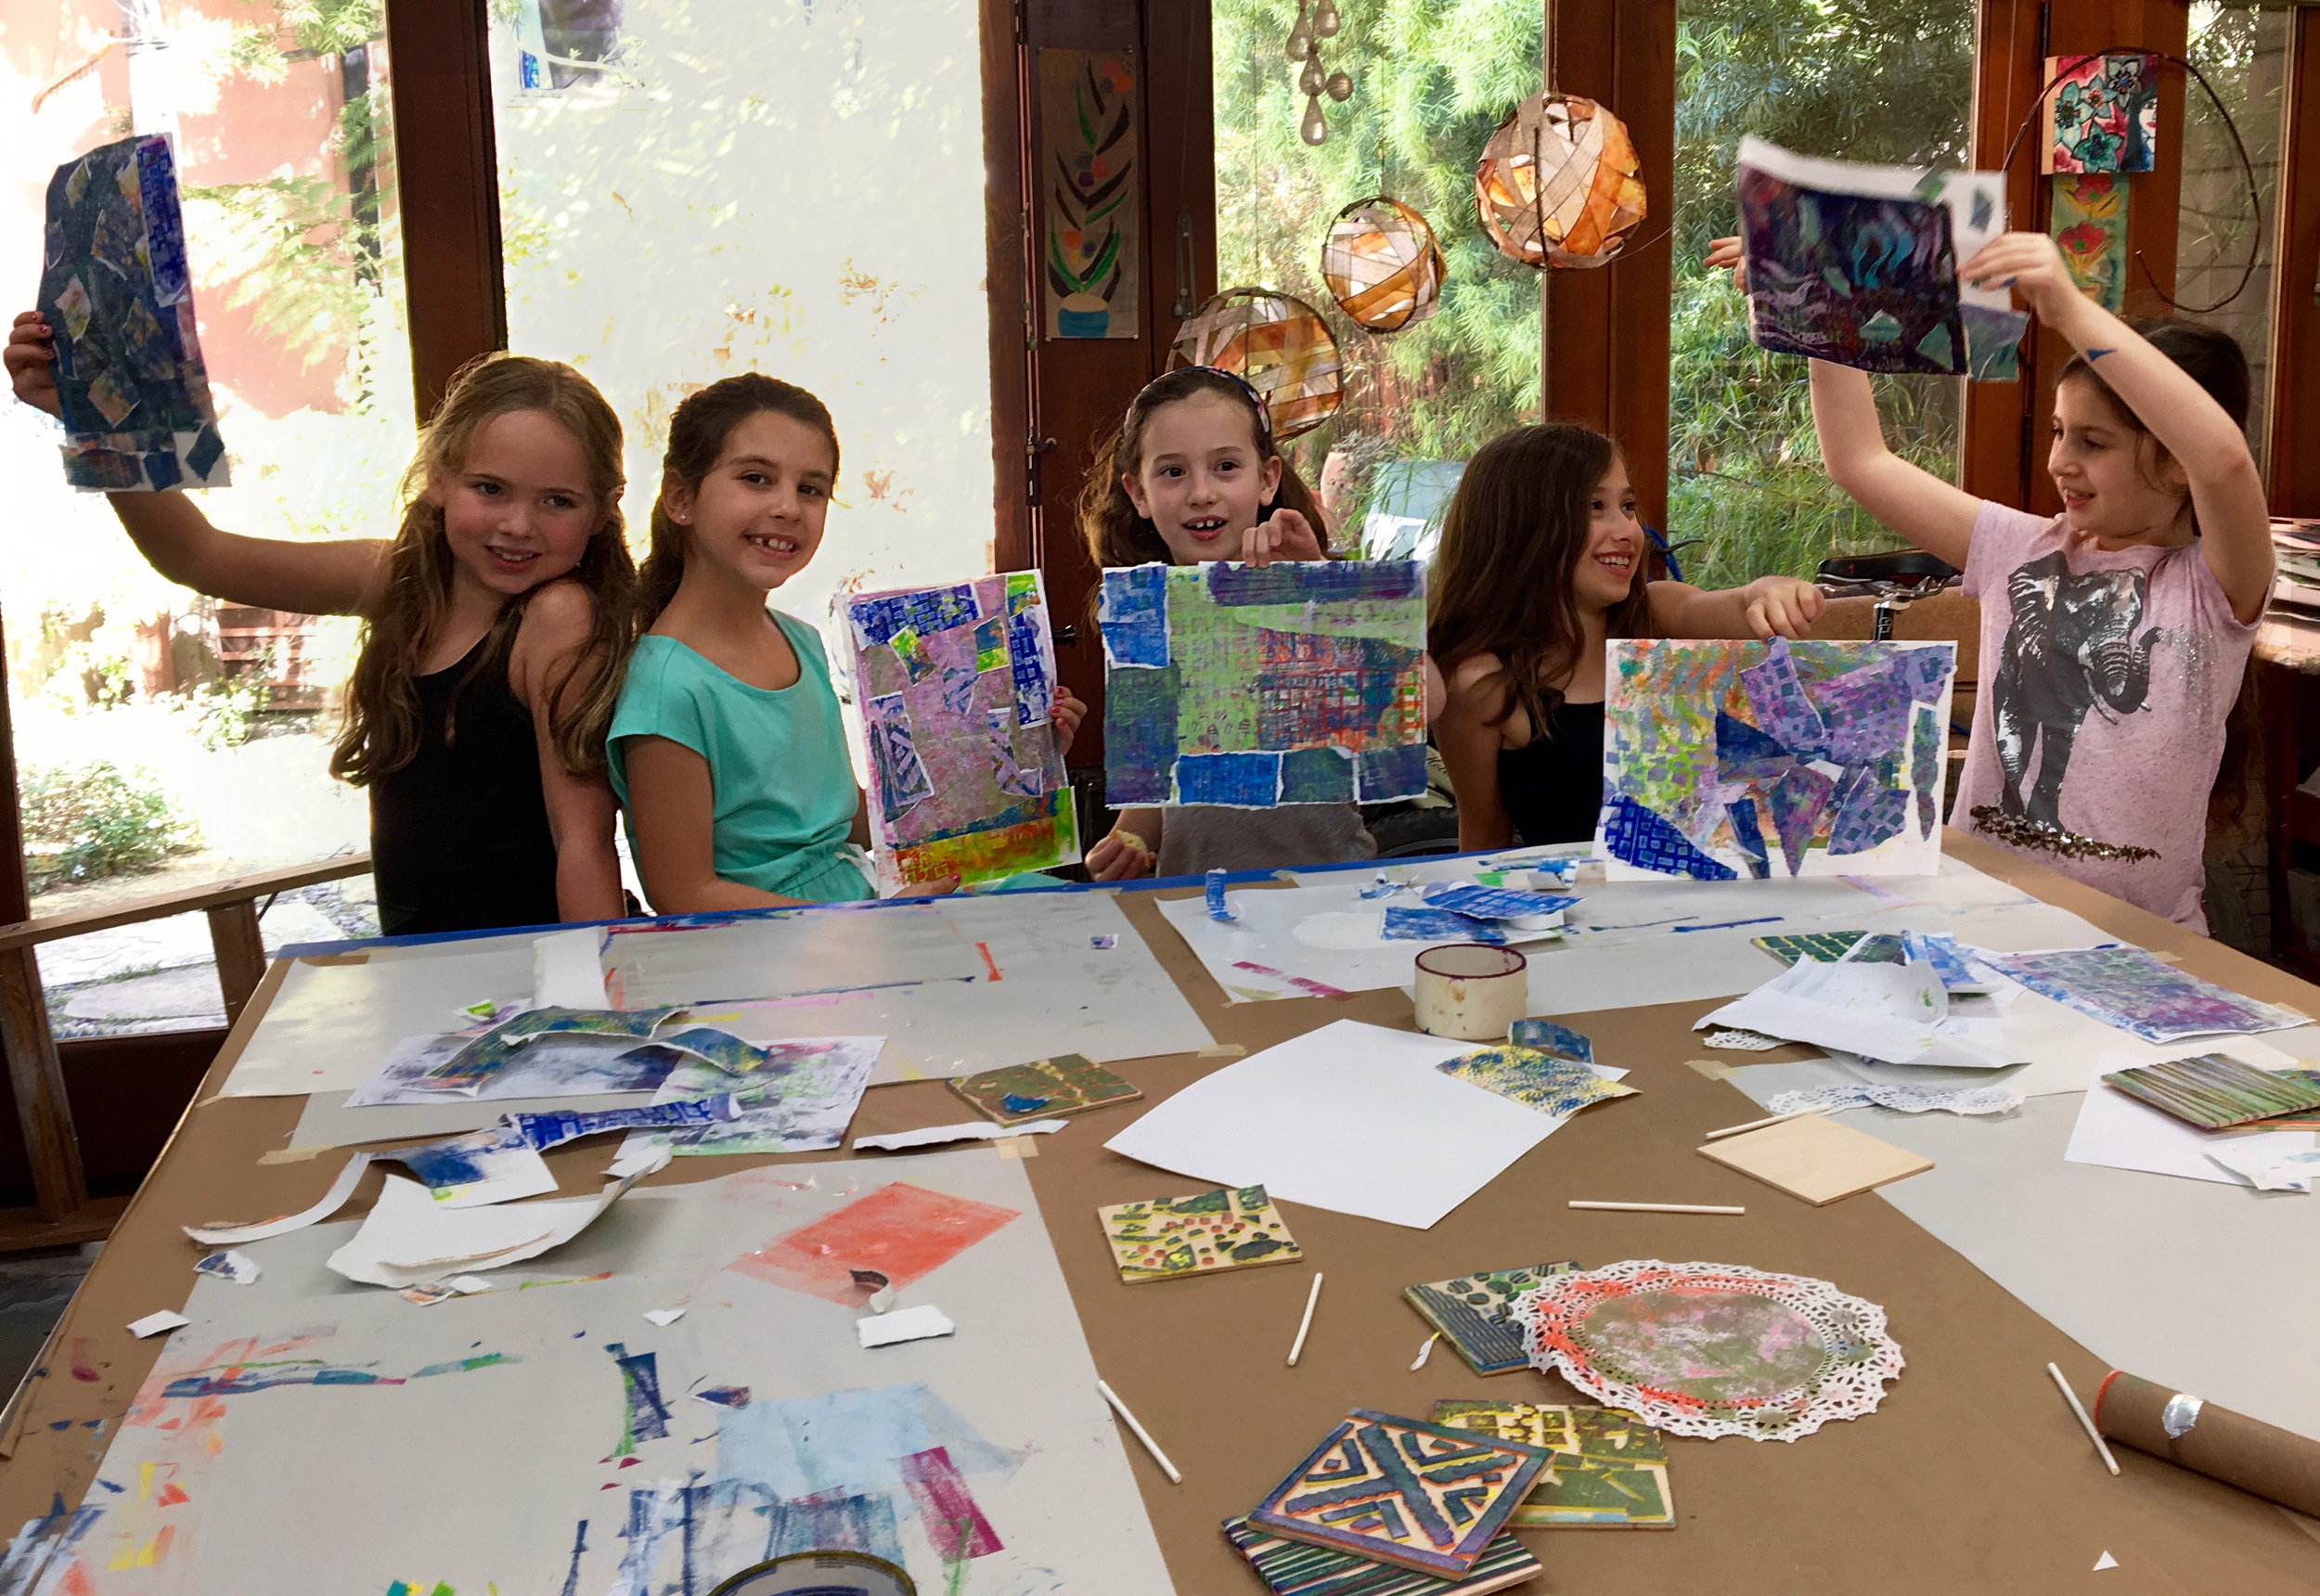 Art classes for kids 5-11 - Classes begin at 3:30 pm, are held once a week on Monday's, Tuesday's, or Thursday's$40 per 1 hour classPlease email: jamieleehofferfineart@gmail.com